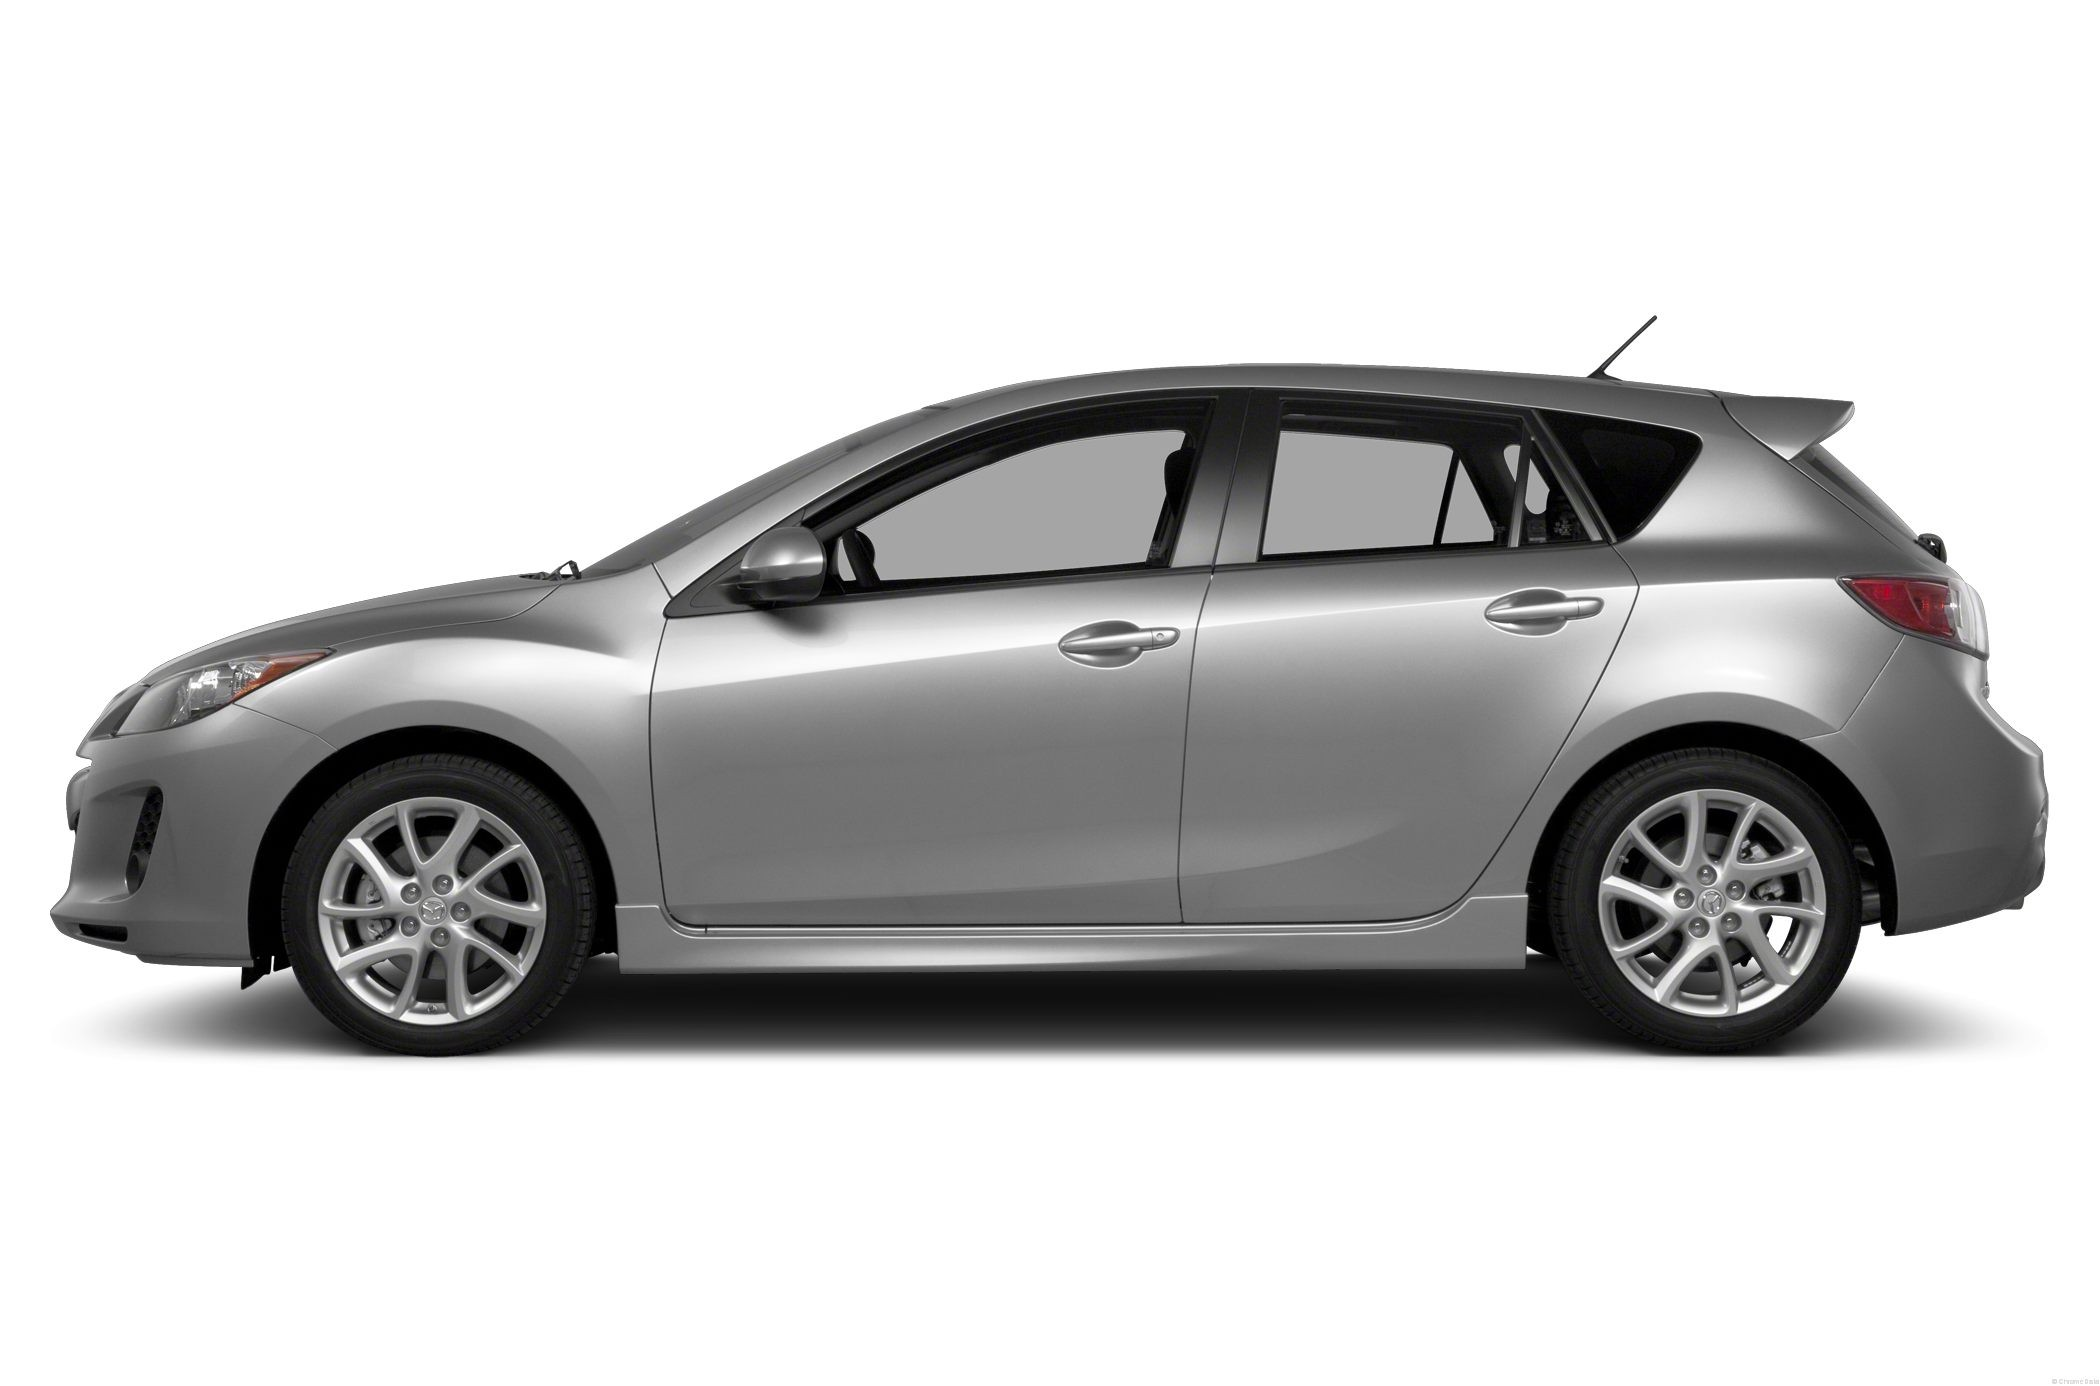 2013 mazda mazda 3 iii hatchback pictures information and specs auto. Black Bedroom Furniture Sets. Home Design Ideas